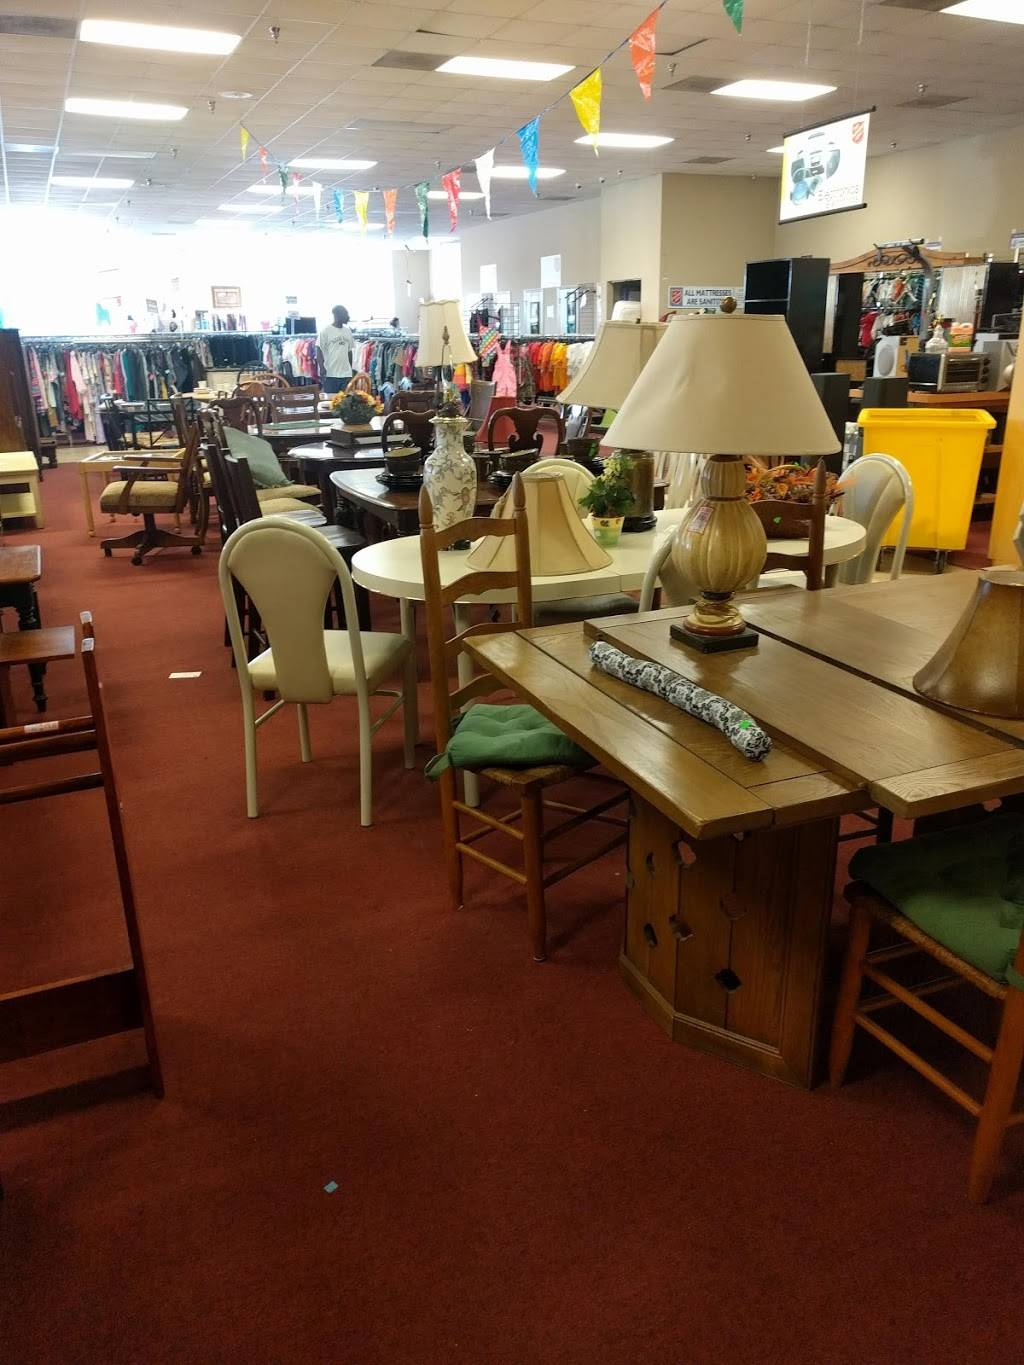 The Salvation Army Family Store and Donation Center - furniture store  | Photo 8 of 10 | Address: 205 Tryon Rd, Raleigh, NC 27603, USA | Phone: (919) 779-8867